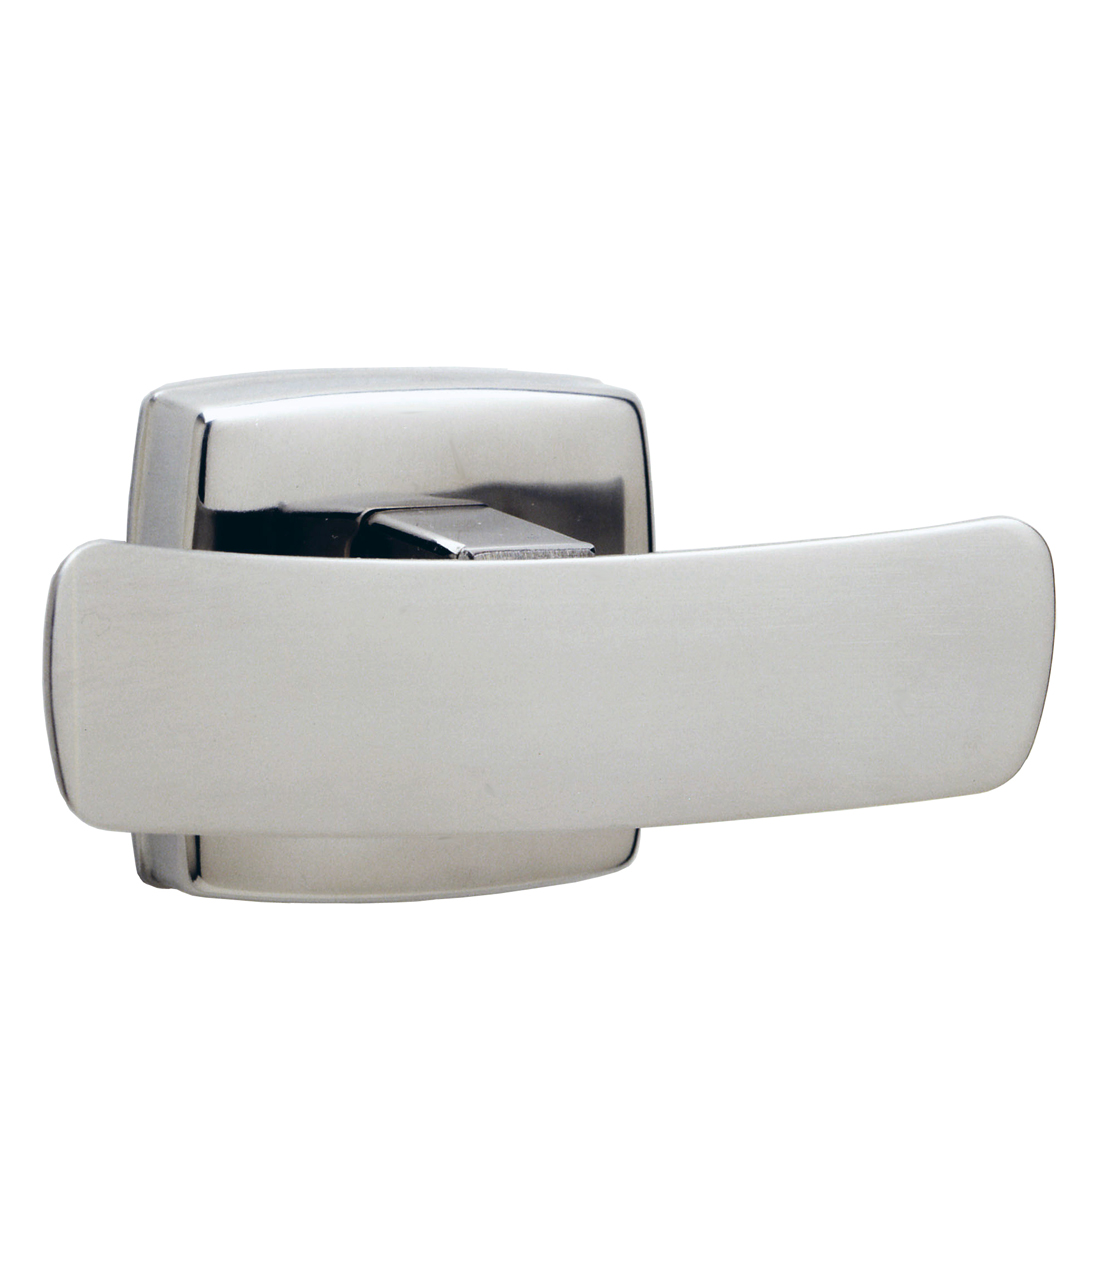 Gamco 7672 Surface-Mounted Double Robe Hook - Bright Finish